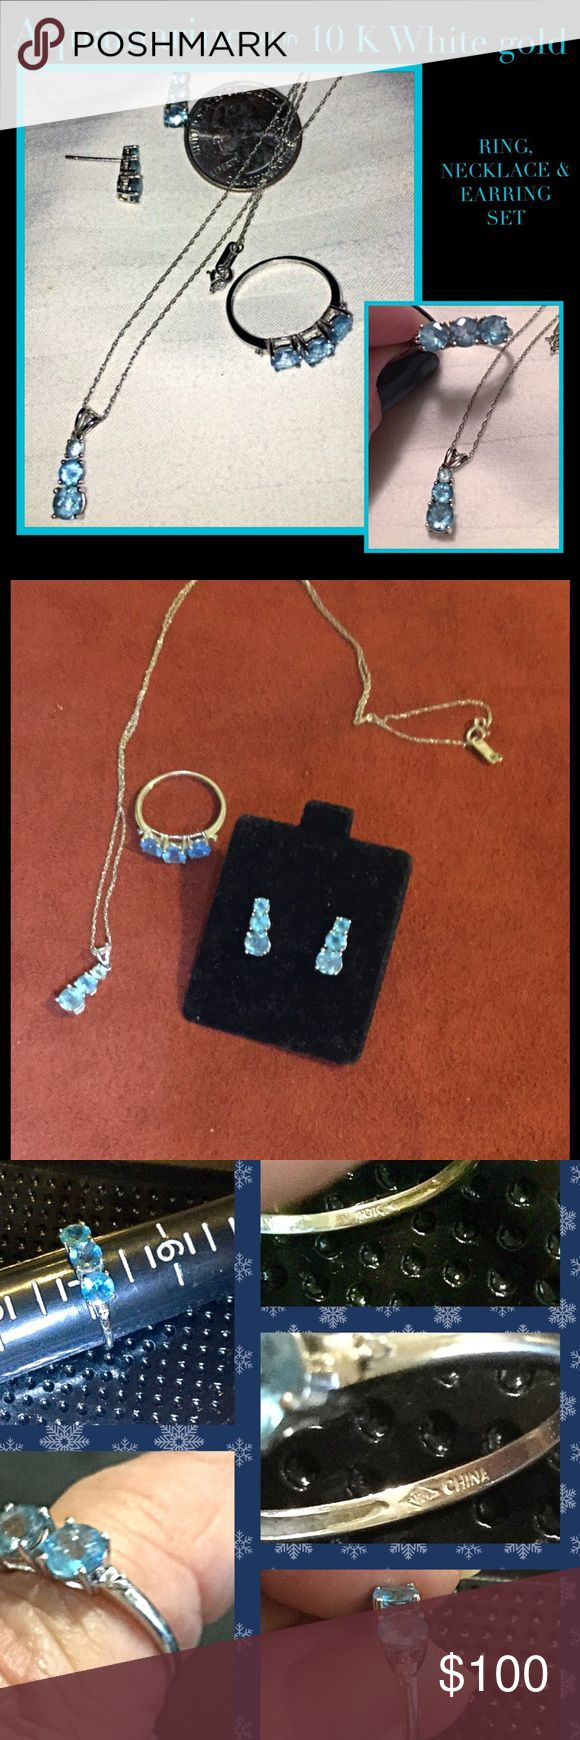 "Aquamarine 10k White past, present & future set RING..MARKED 10K WHITE GOLD AND MAKERS MARK & CHINA NECKLACE, RING AND EARRINGS..ALL HAVE 10K MARK PAST,PRESENT& FUTURE DESIGN 3 BLUE ( aquamarine) STONES with tiny diamond set on each side of ring Chain 18"" Ring size 7 Earrings 1/2""  Excellent CONDITION PRICE FIRM..THANK YOU Jewelry Necklaces"